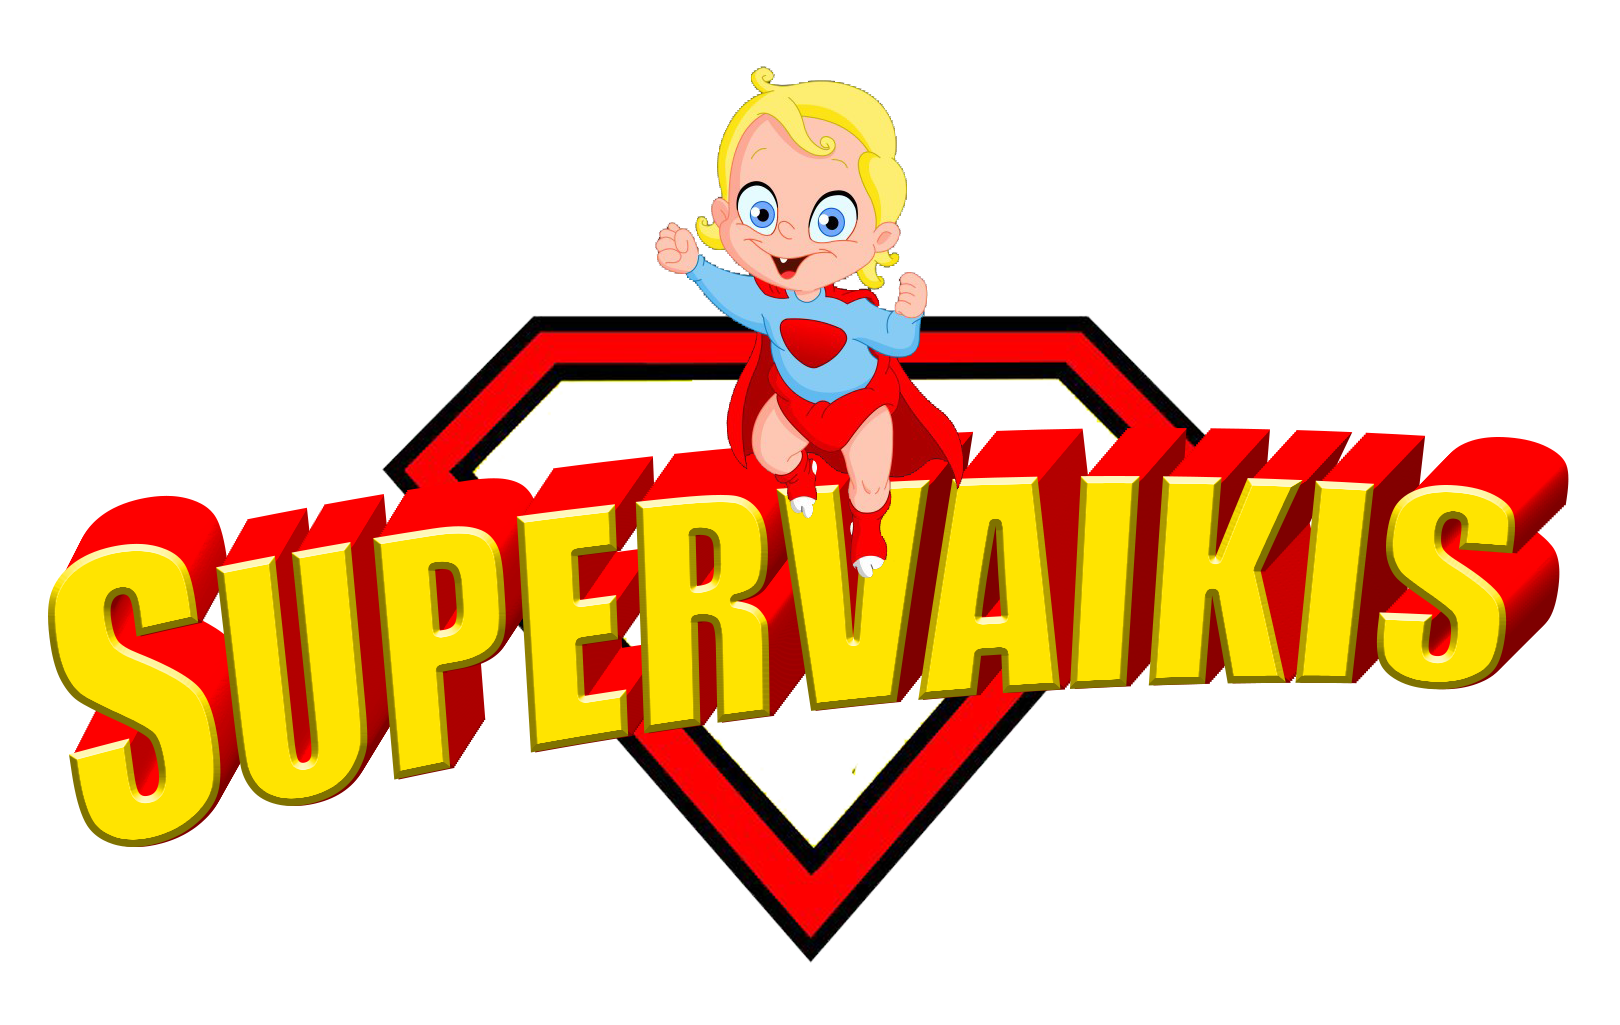 Supervaikis.lt